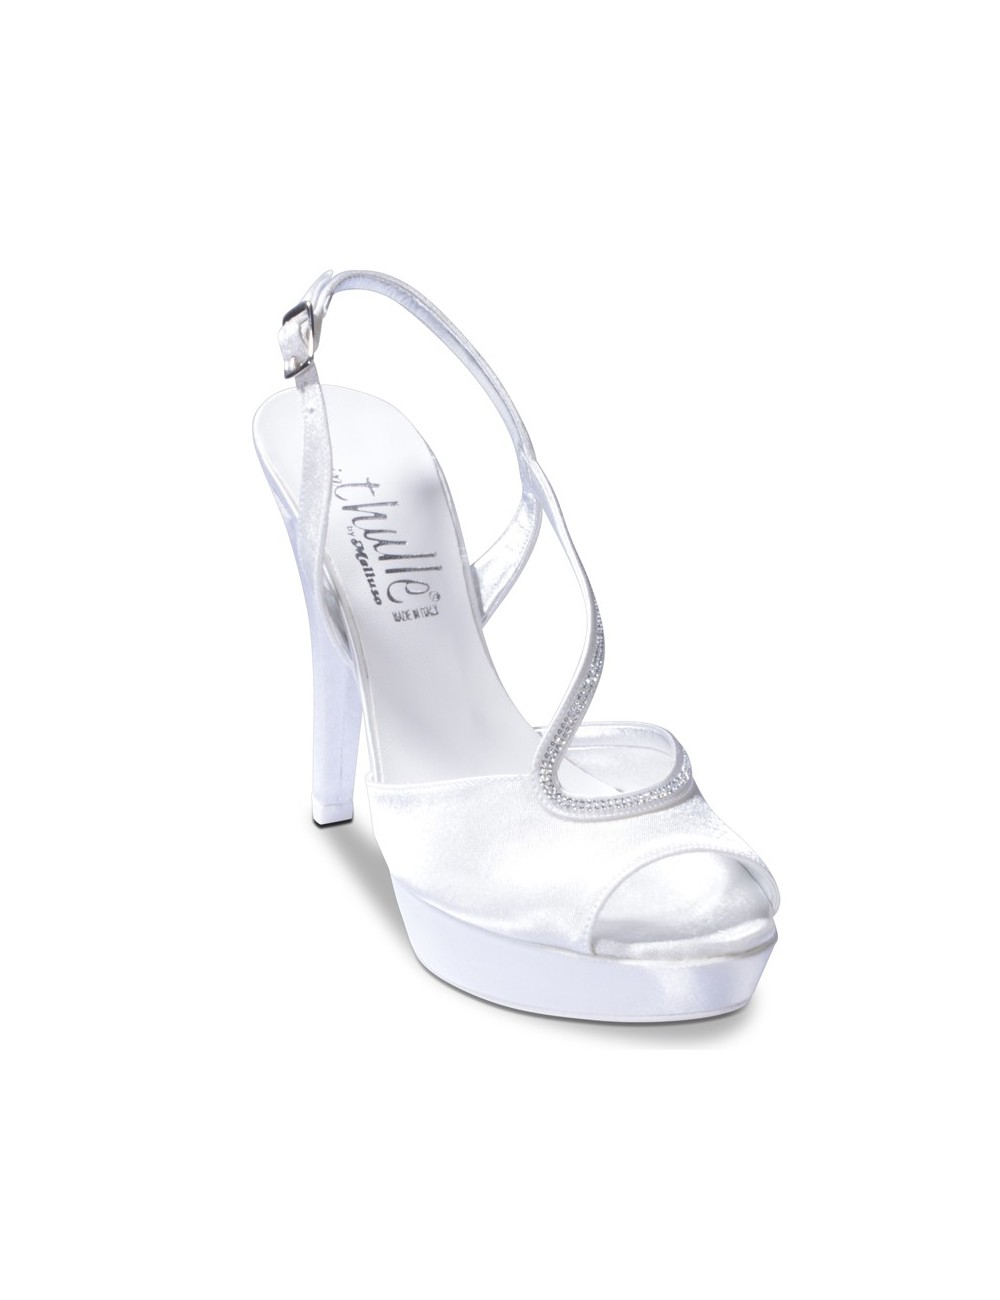 Scarpe Sposa Melluso.Th219 In Thulle By Melluso